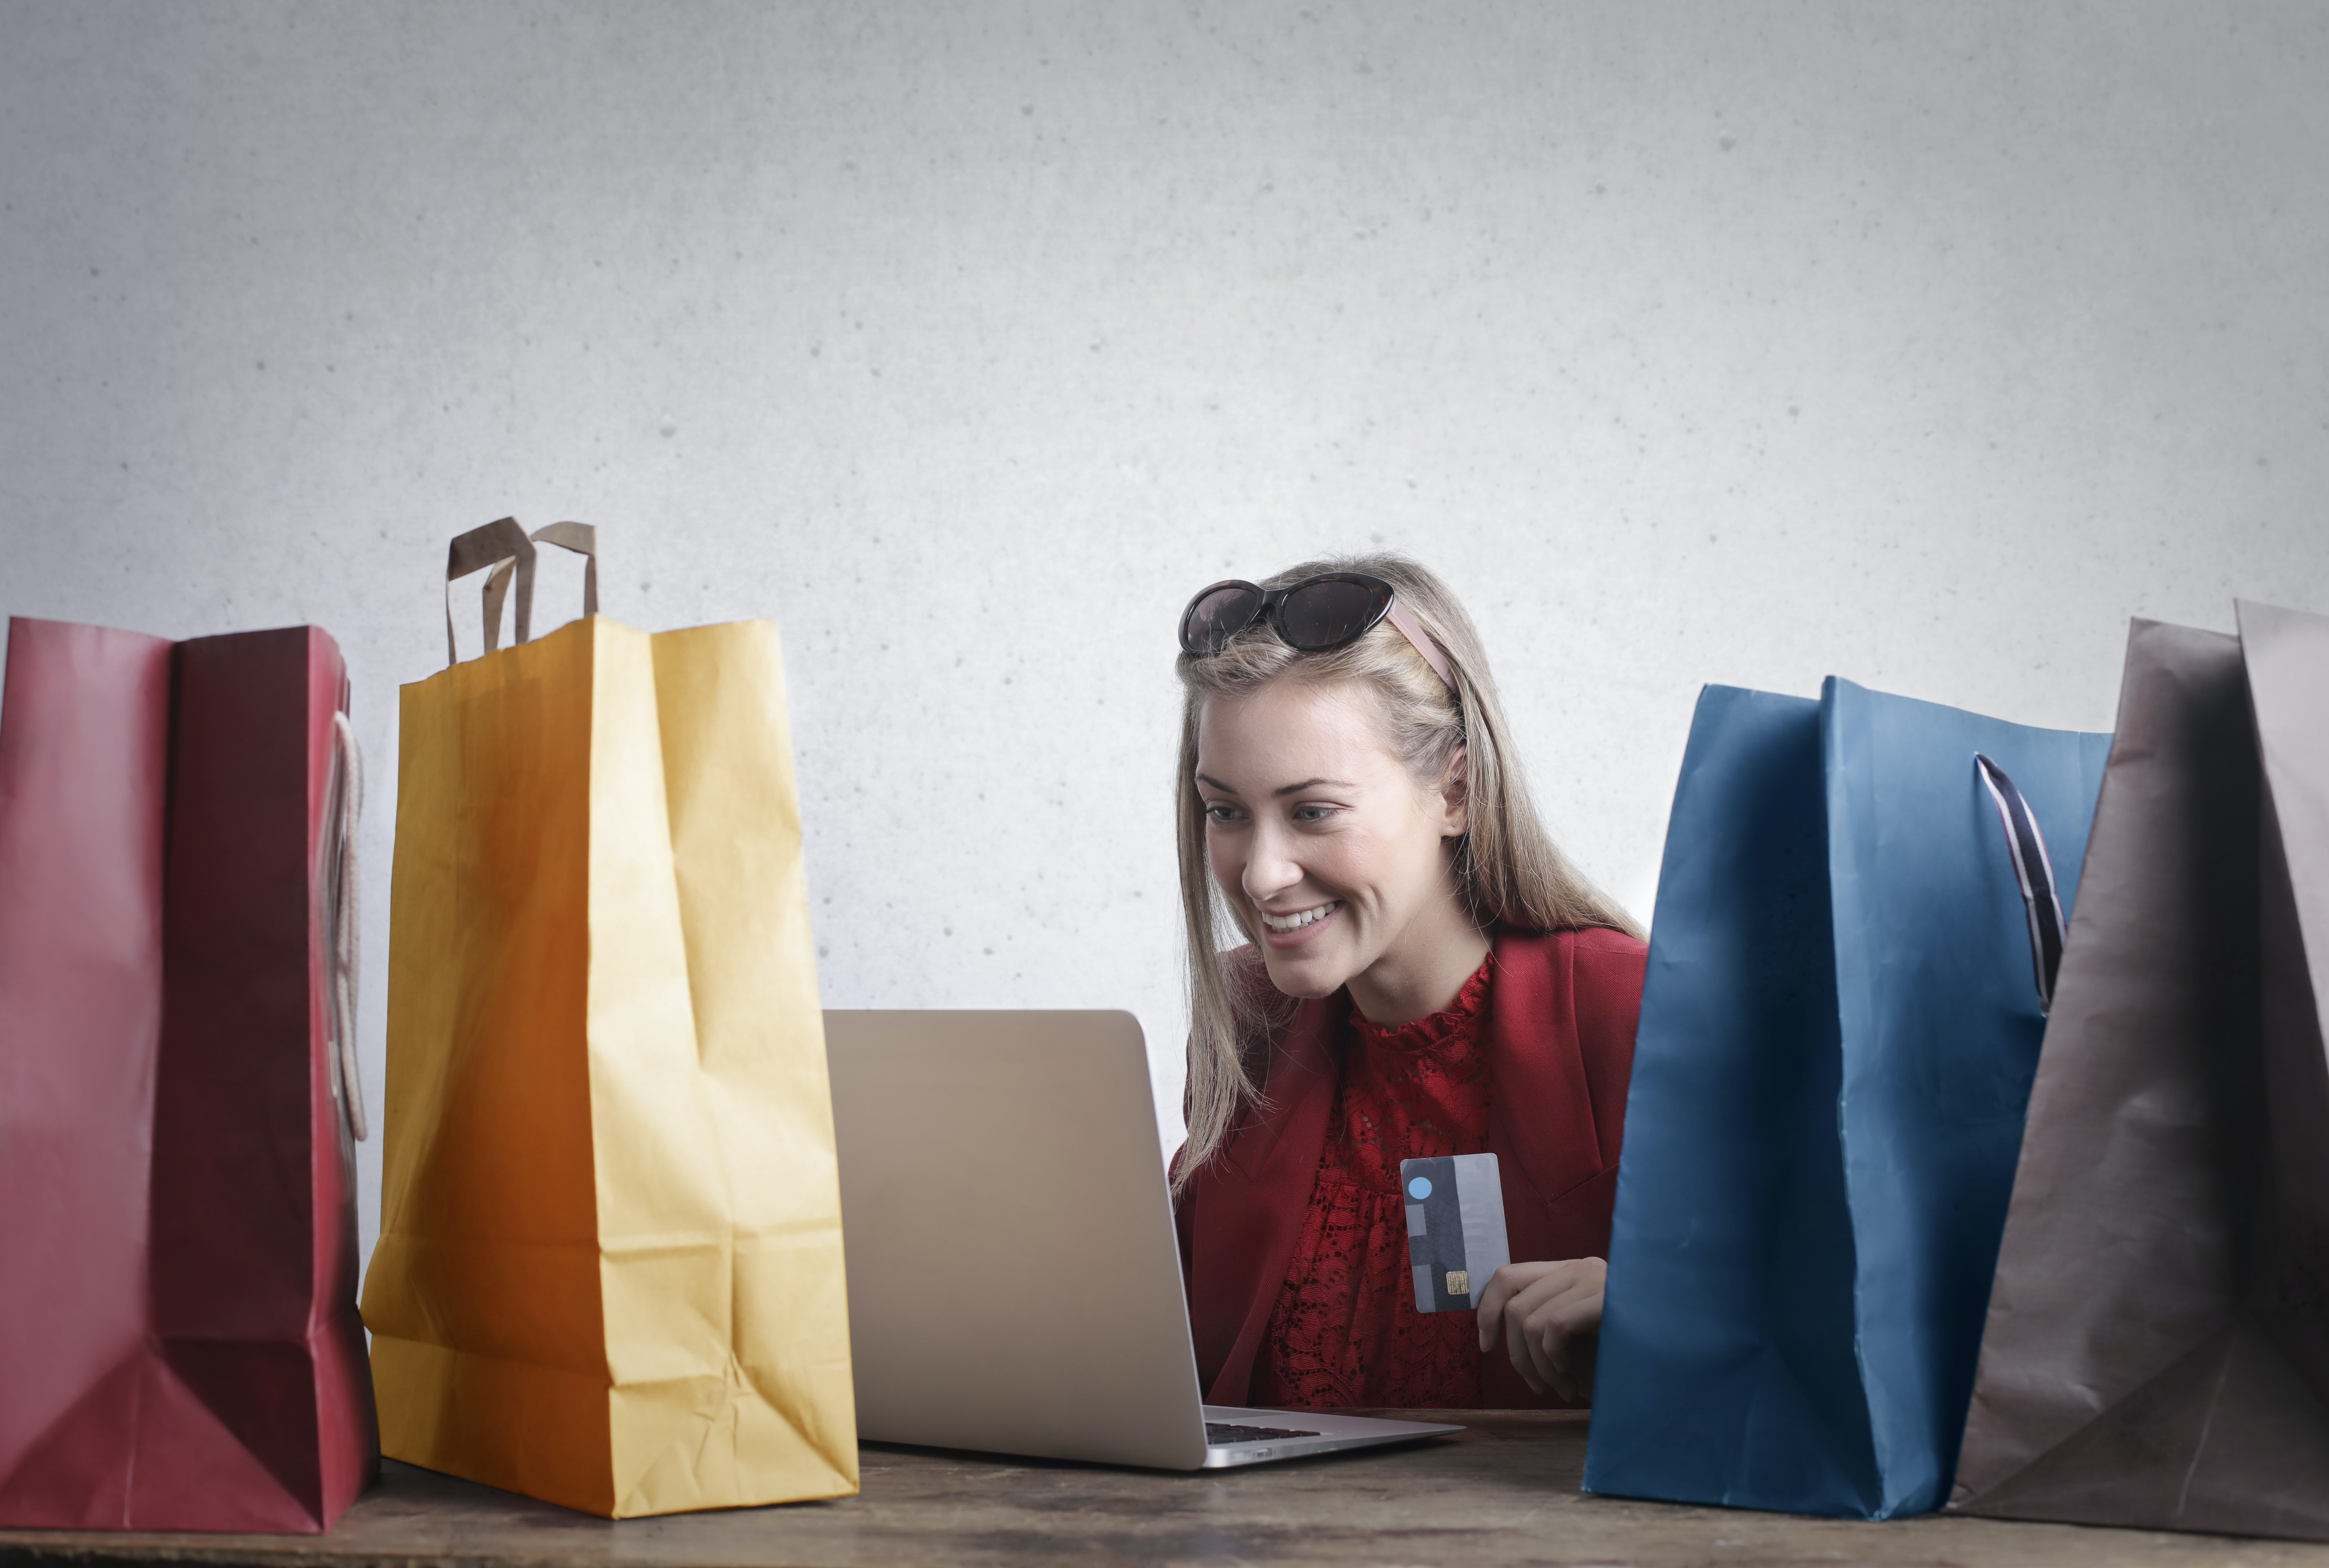 Women shopping online from home